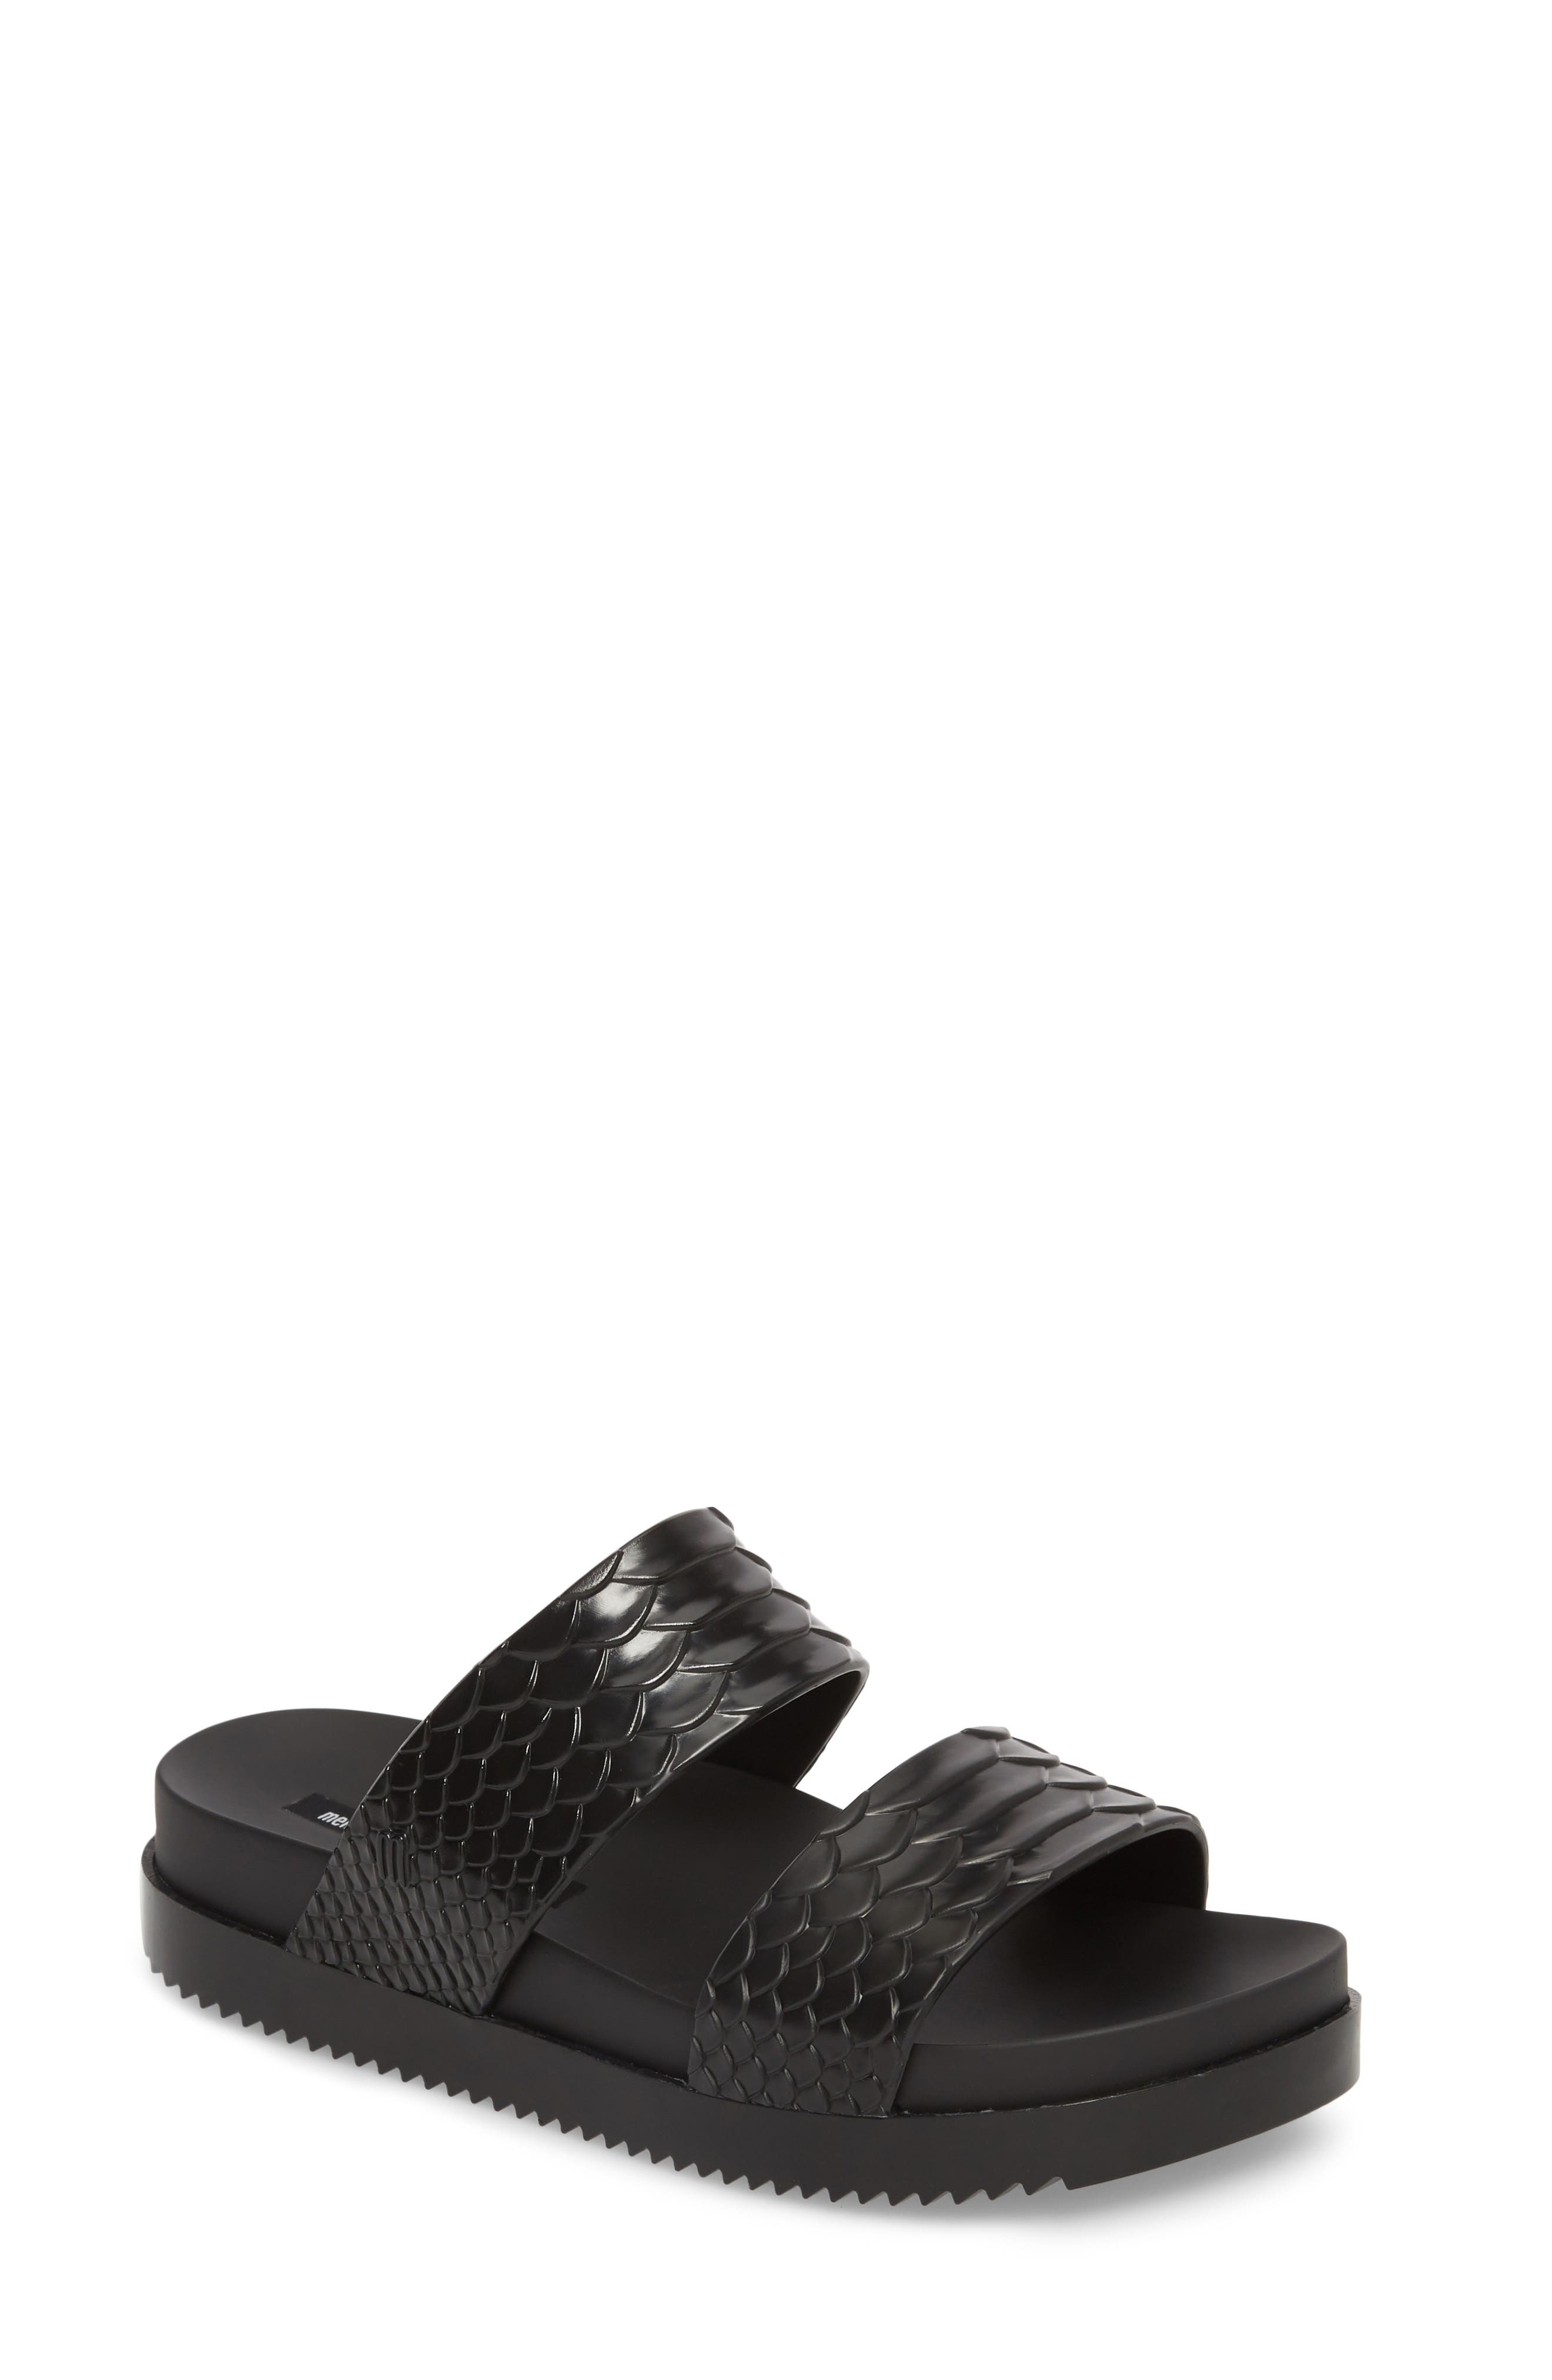 Cosmic Python Baja Slide Sandal,                         Main,                         color, 001